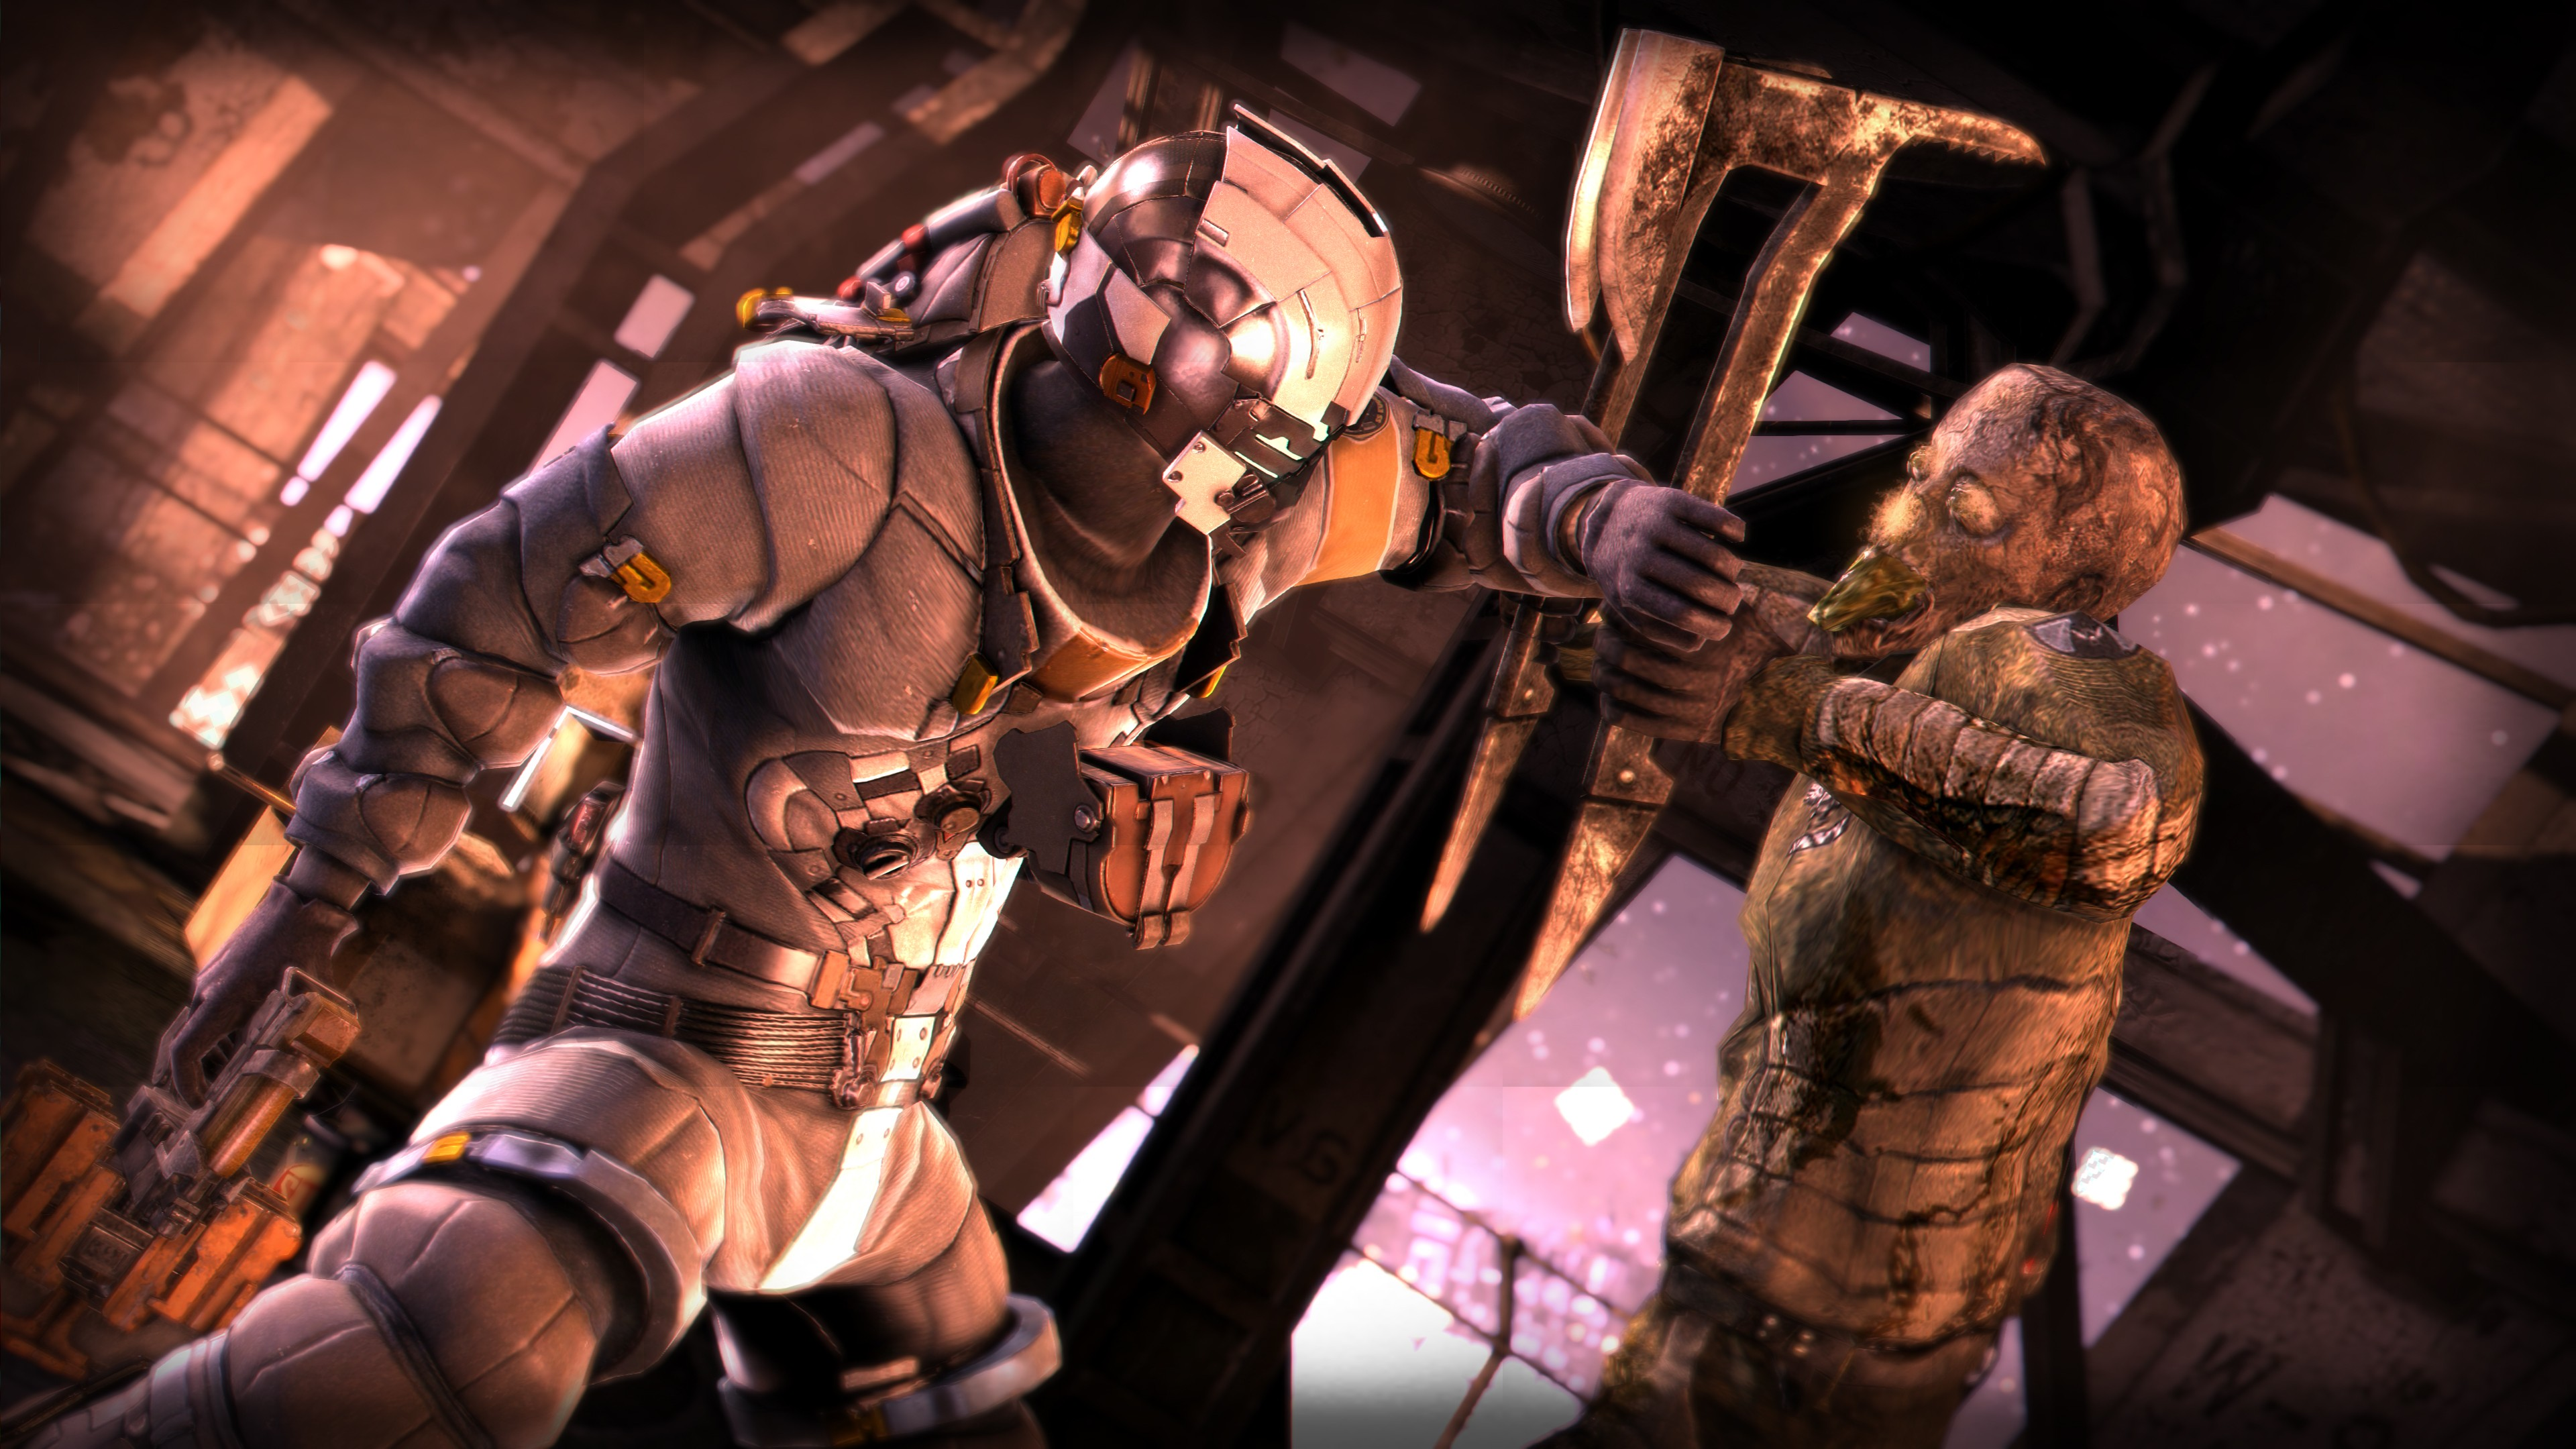 dead space 3 wallpapers pictures images